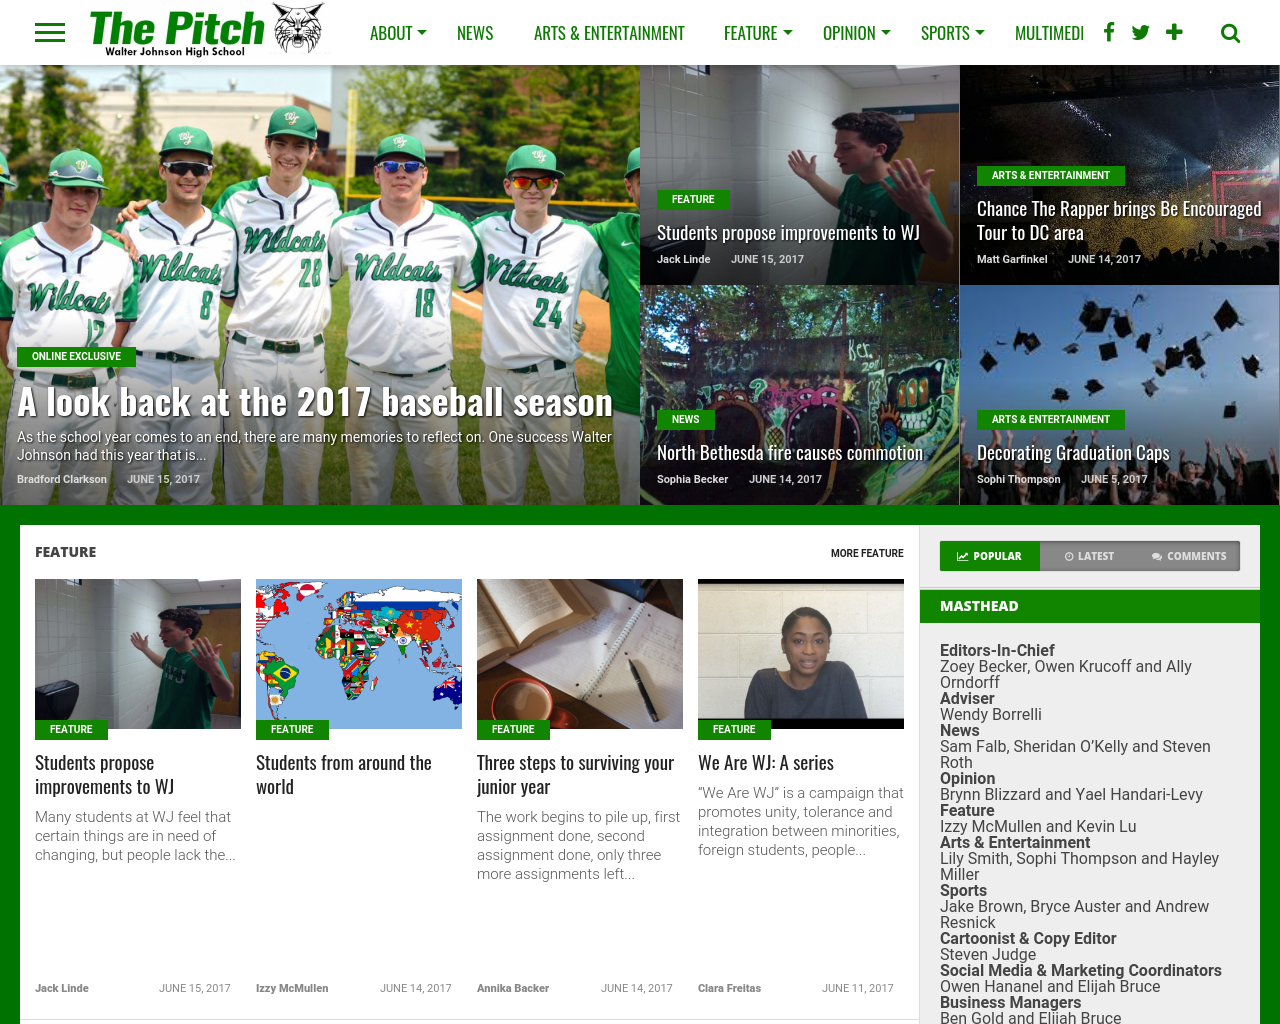 The-Pitch-Online-Advertising-Reviews-Pricing